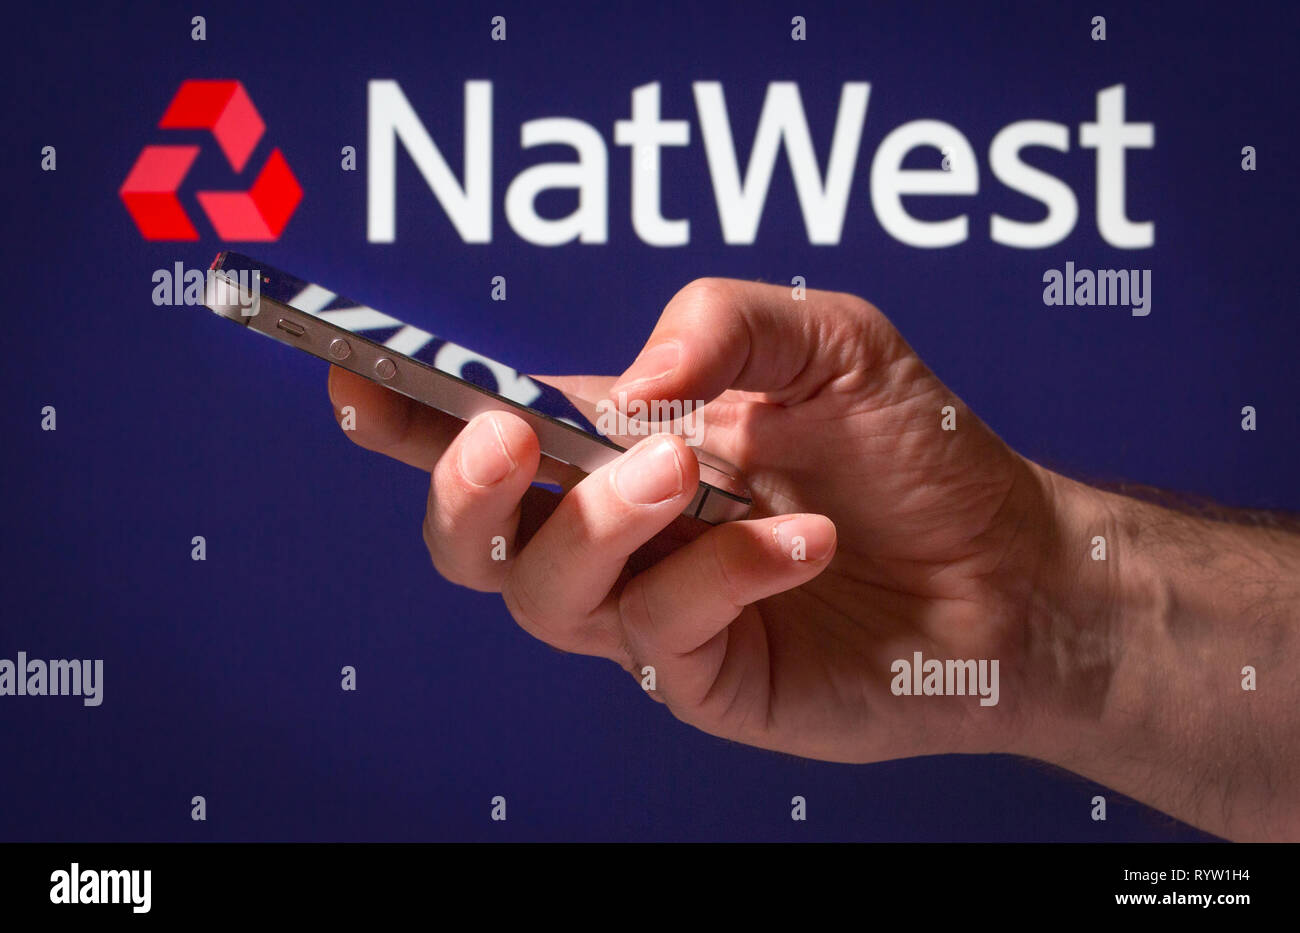 A man using Natwest online banking on his mobile phone - Stock Image